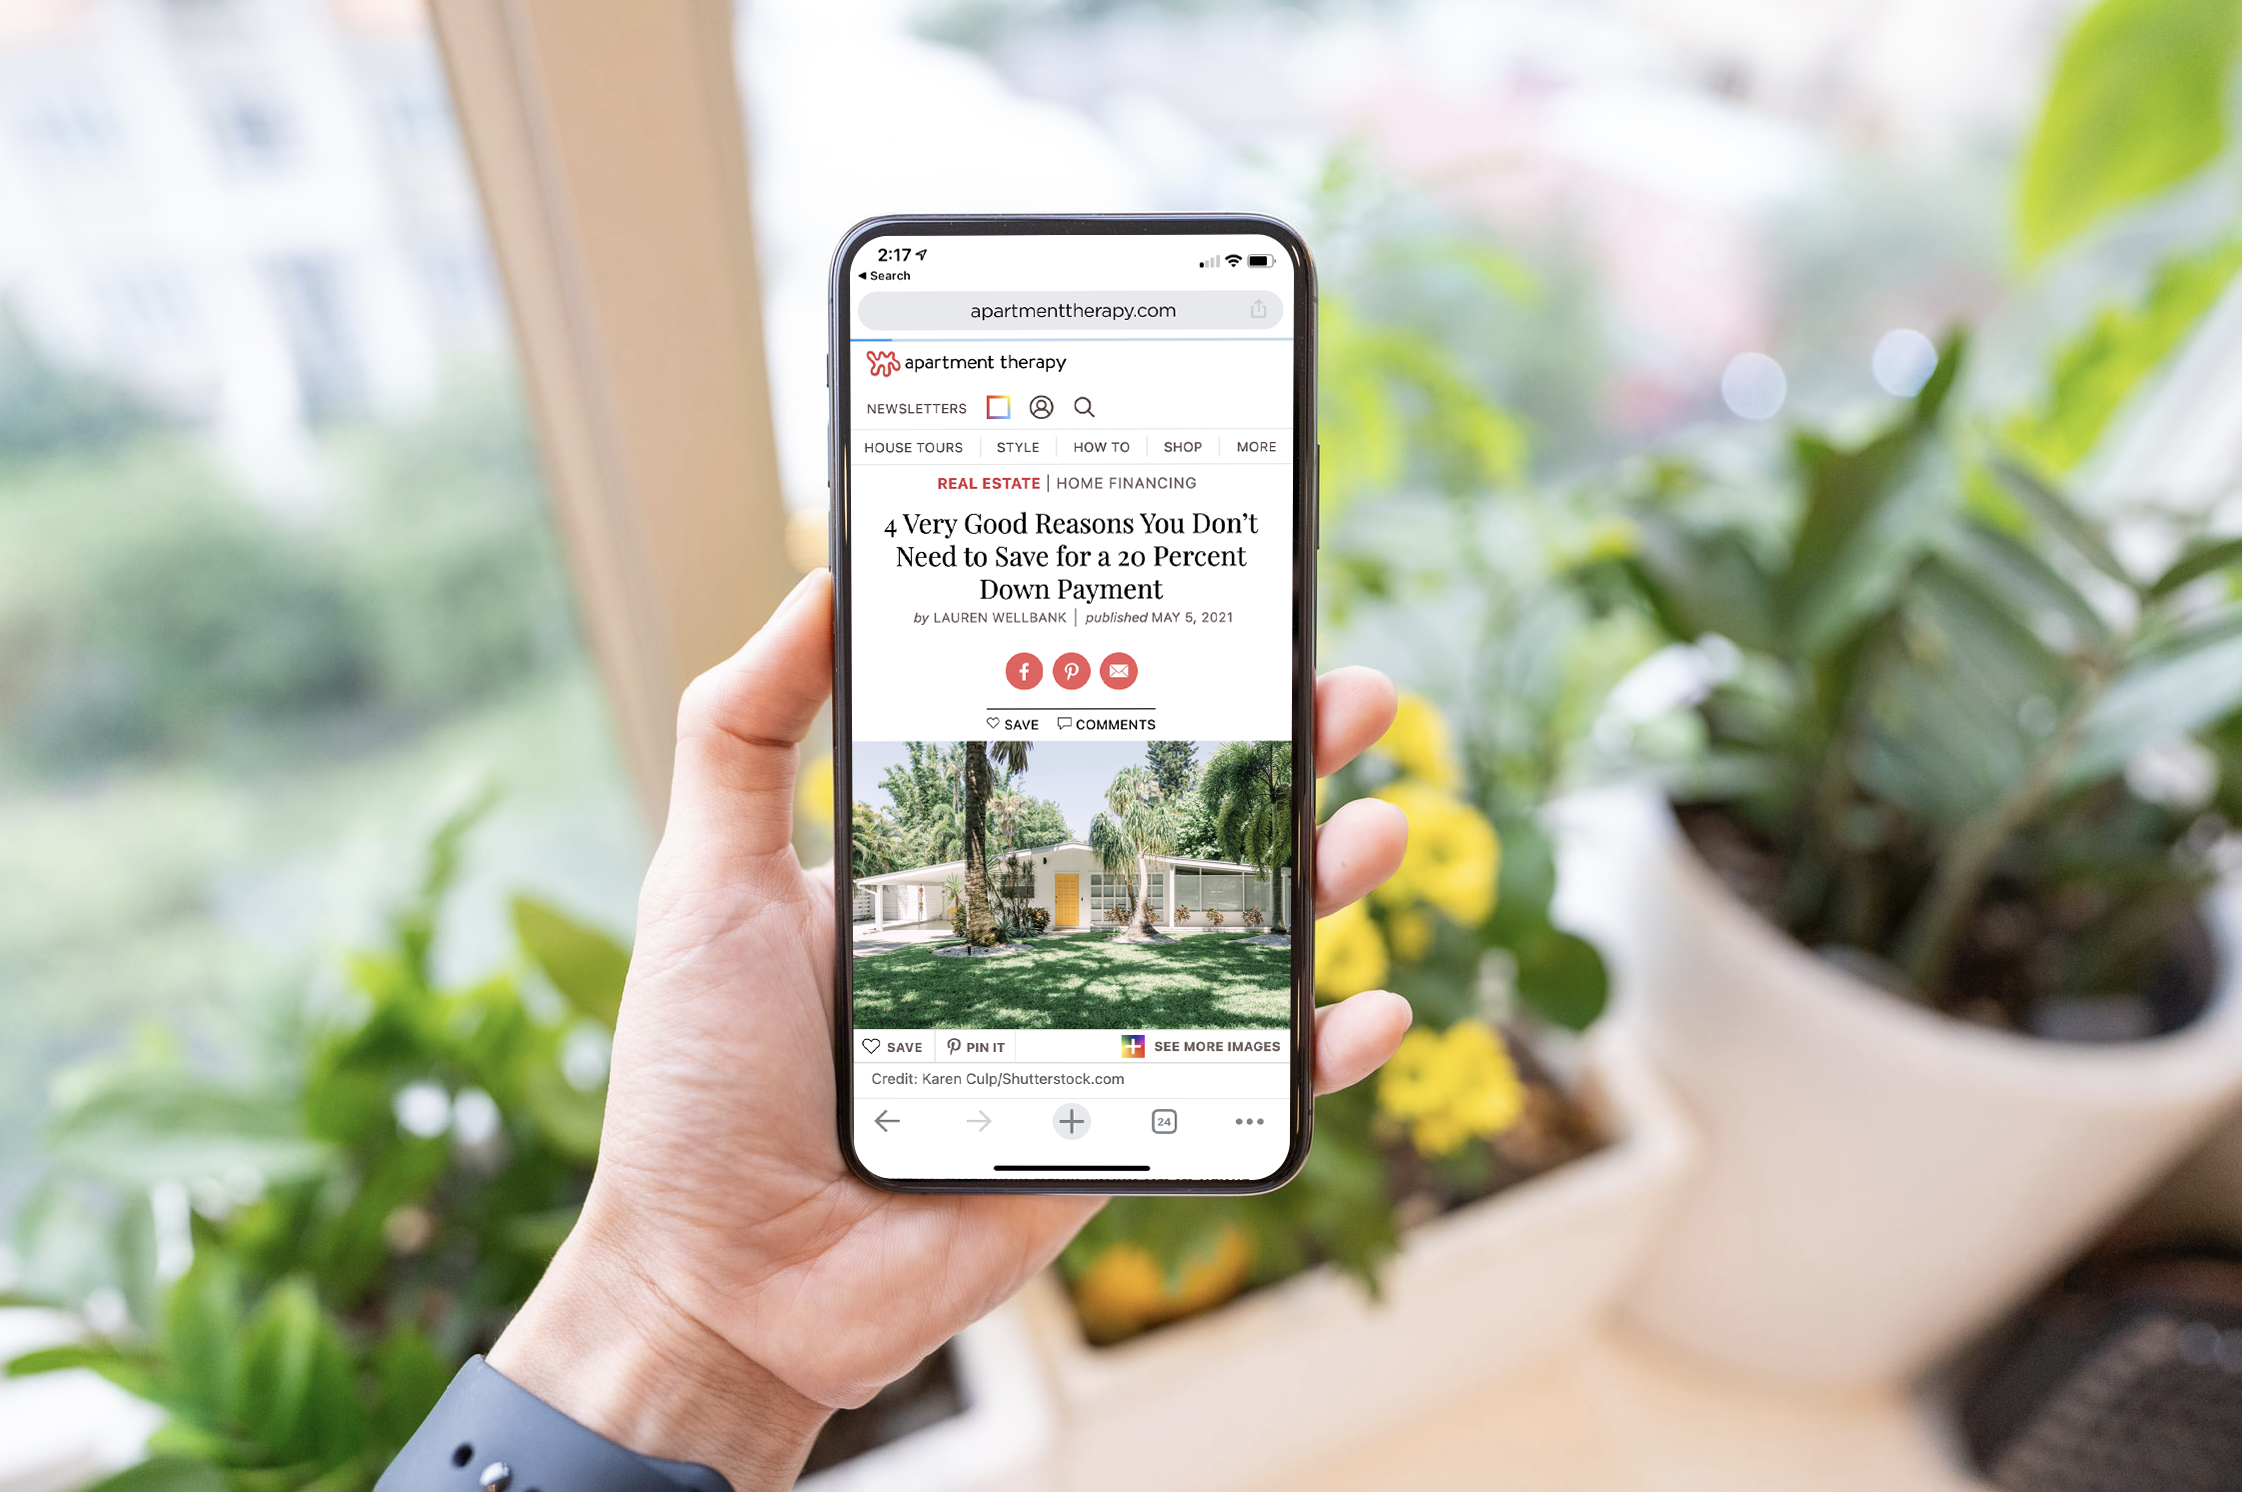 Hand holding iPhone showcasing Apartment Therapy article